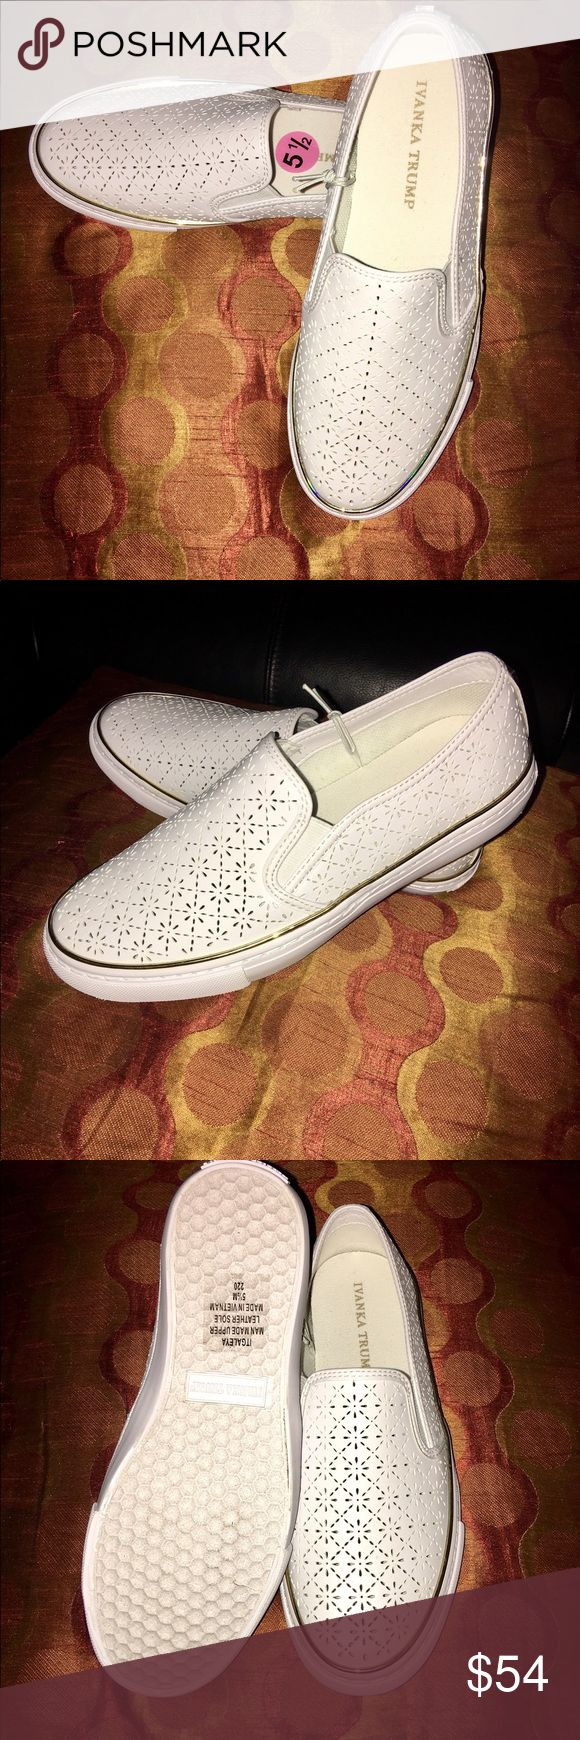 Ivanka Trump Laser Cut Slip on Sneaker This Very Stylish Ivanka Trump White Slip-on Sneaker will complement any outfit, Eye catching GoldTone Trim, Leather Sole and man made upper, New without the box🤗💕🤗 Ivanka Trump Shoes Sneakers